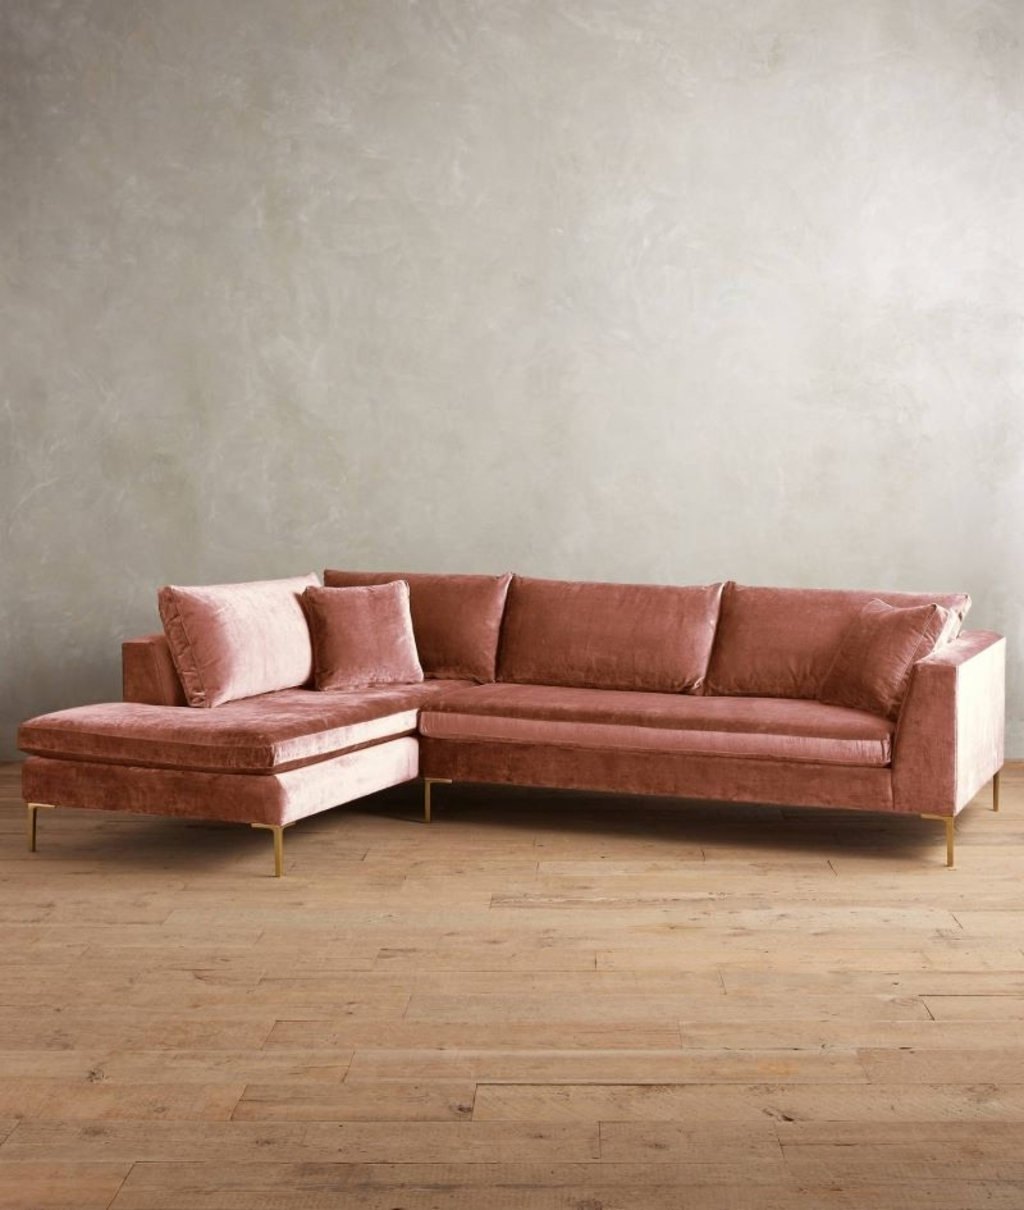 Most Popular Velvet Sectional Sofas For Furniture: Velvet Sectional Sofa From Anthropologie – 20 Modular (View 6 of 15)